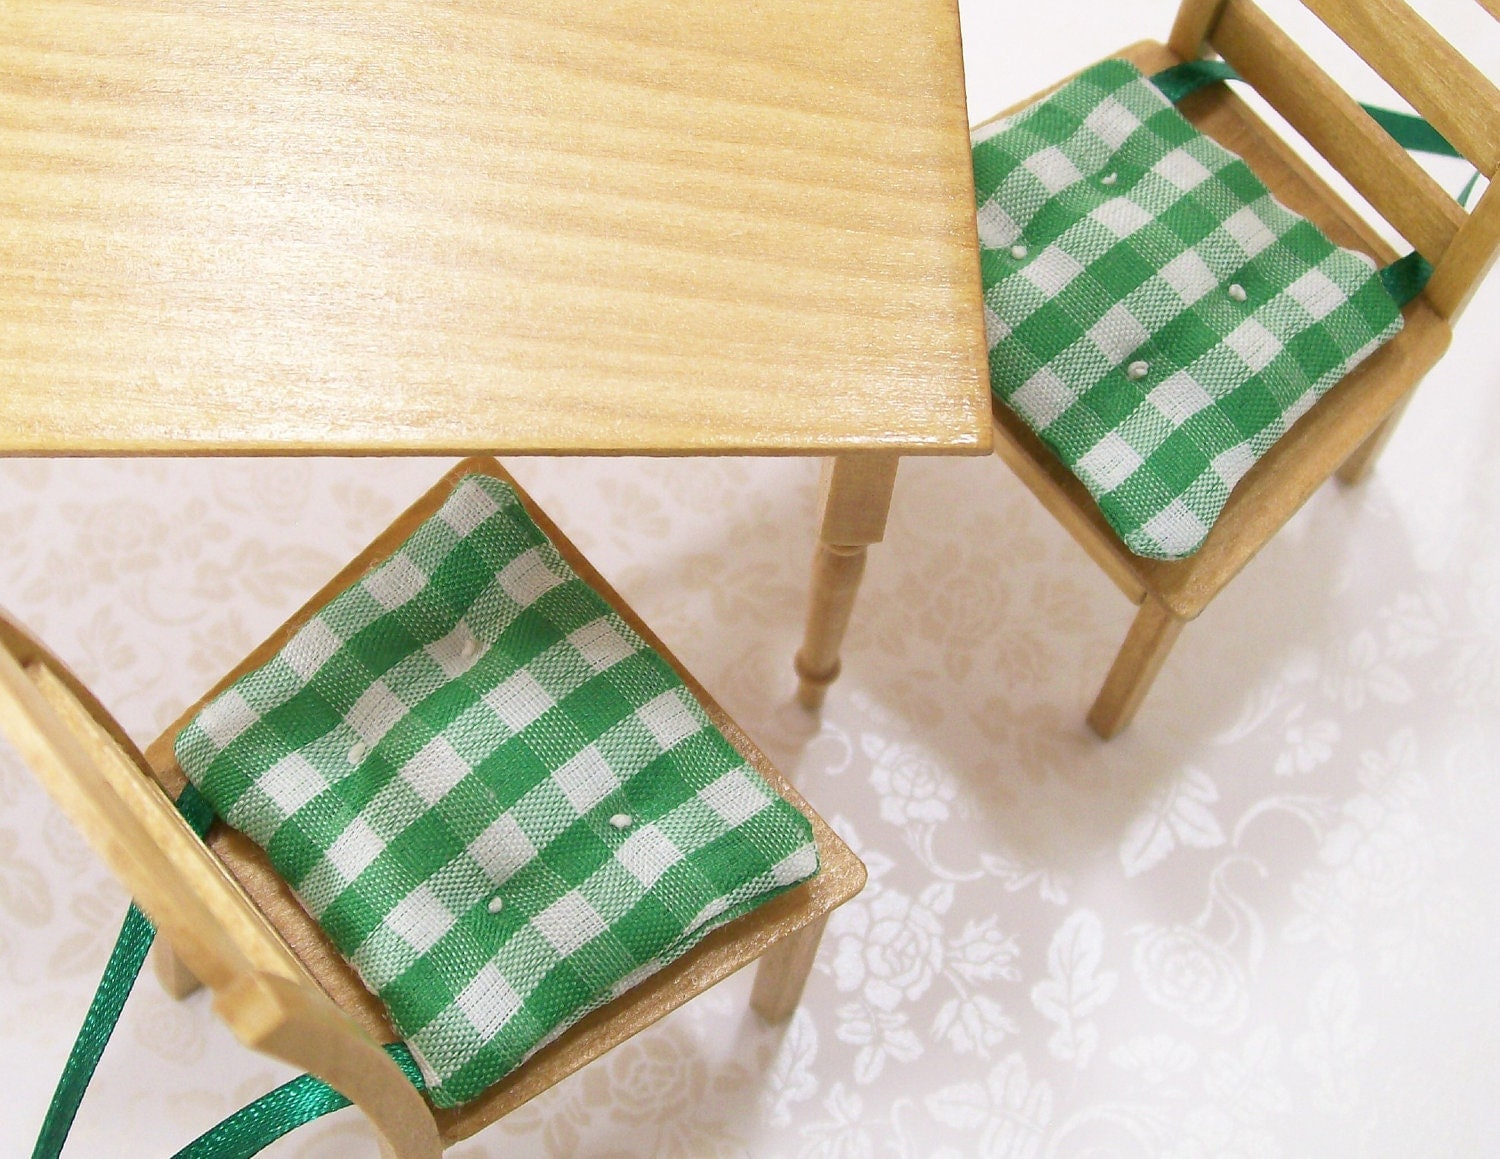 Green Chair Cushions Pads Gingham Kitchen 1 12 Dollhouse